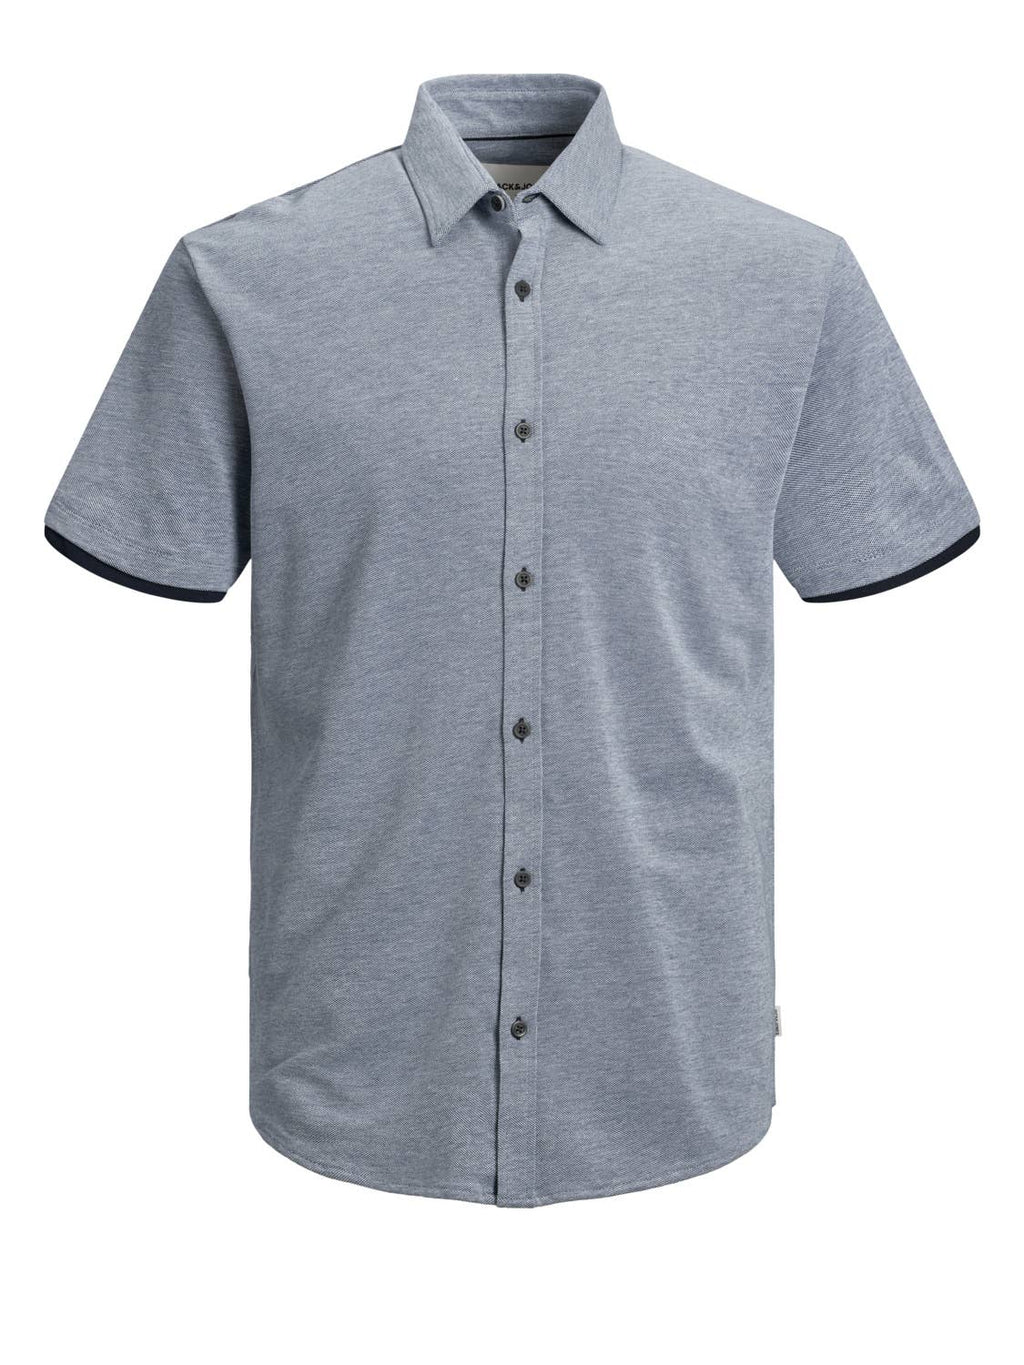 Jack & Jones - Jack & Jones 100% Cotton Pique Short Sleeve Shirt